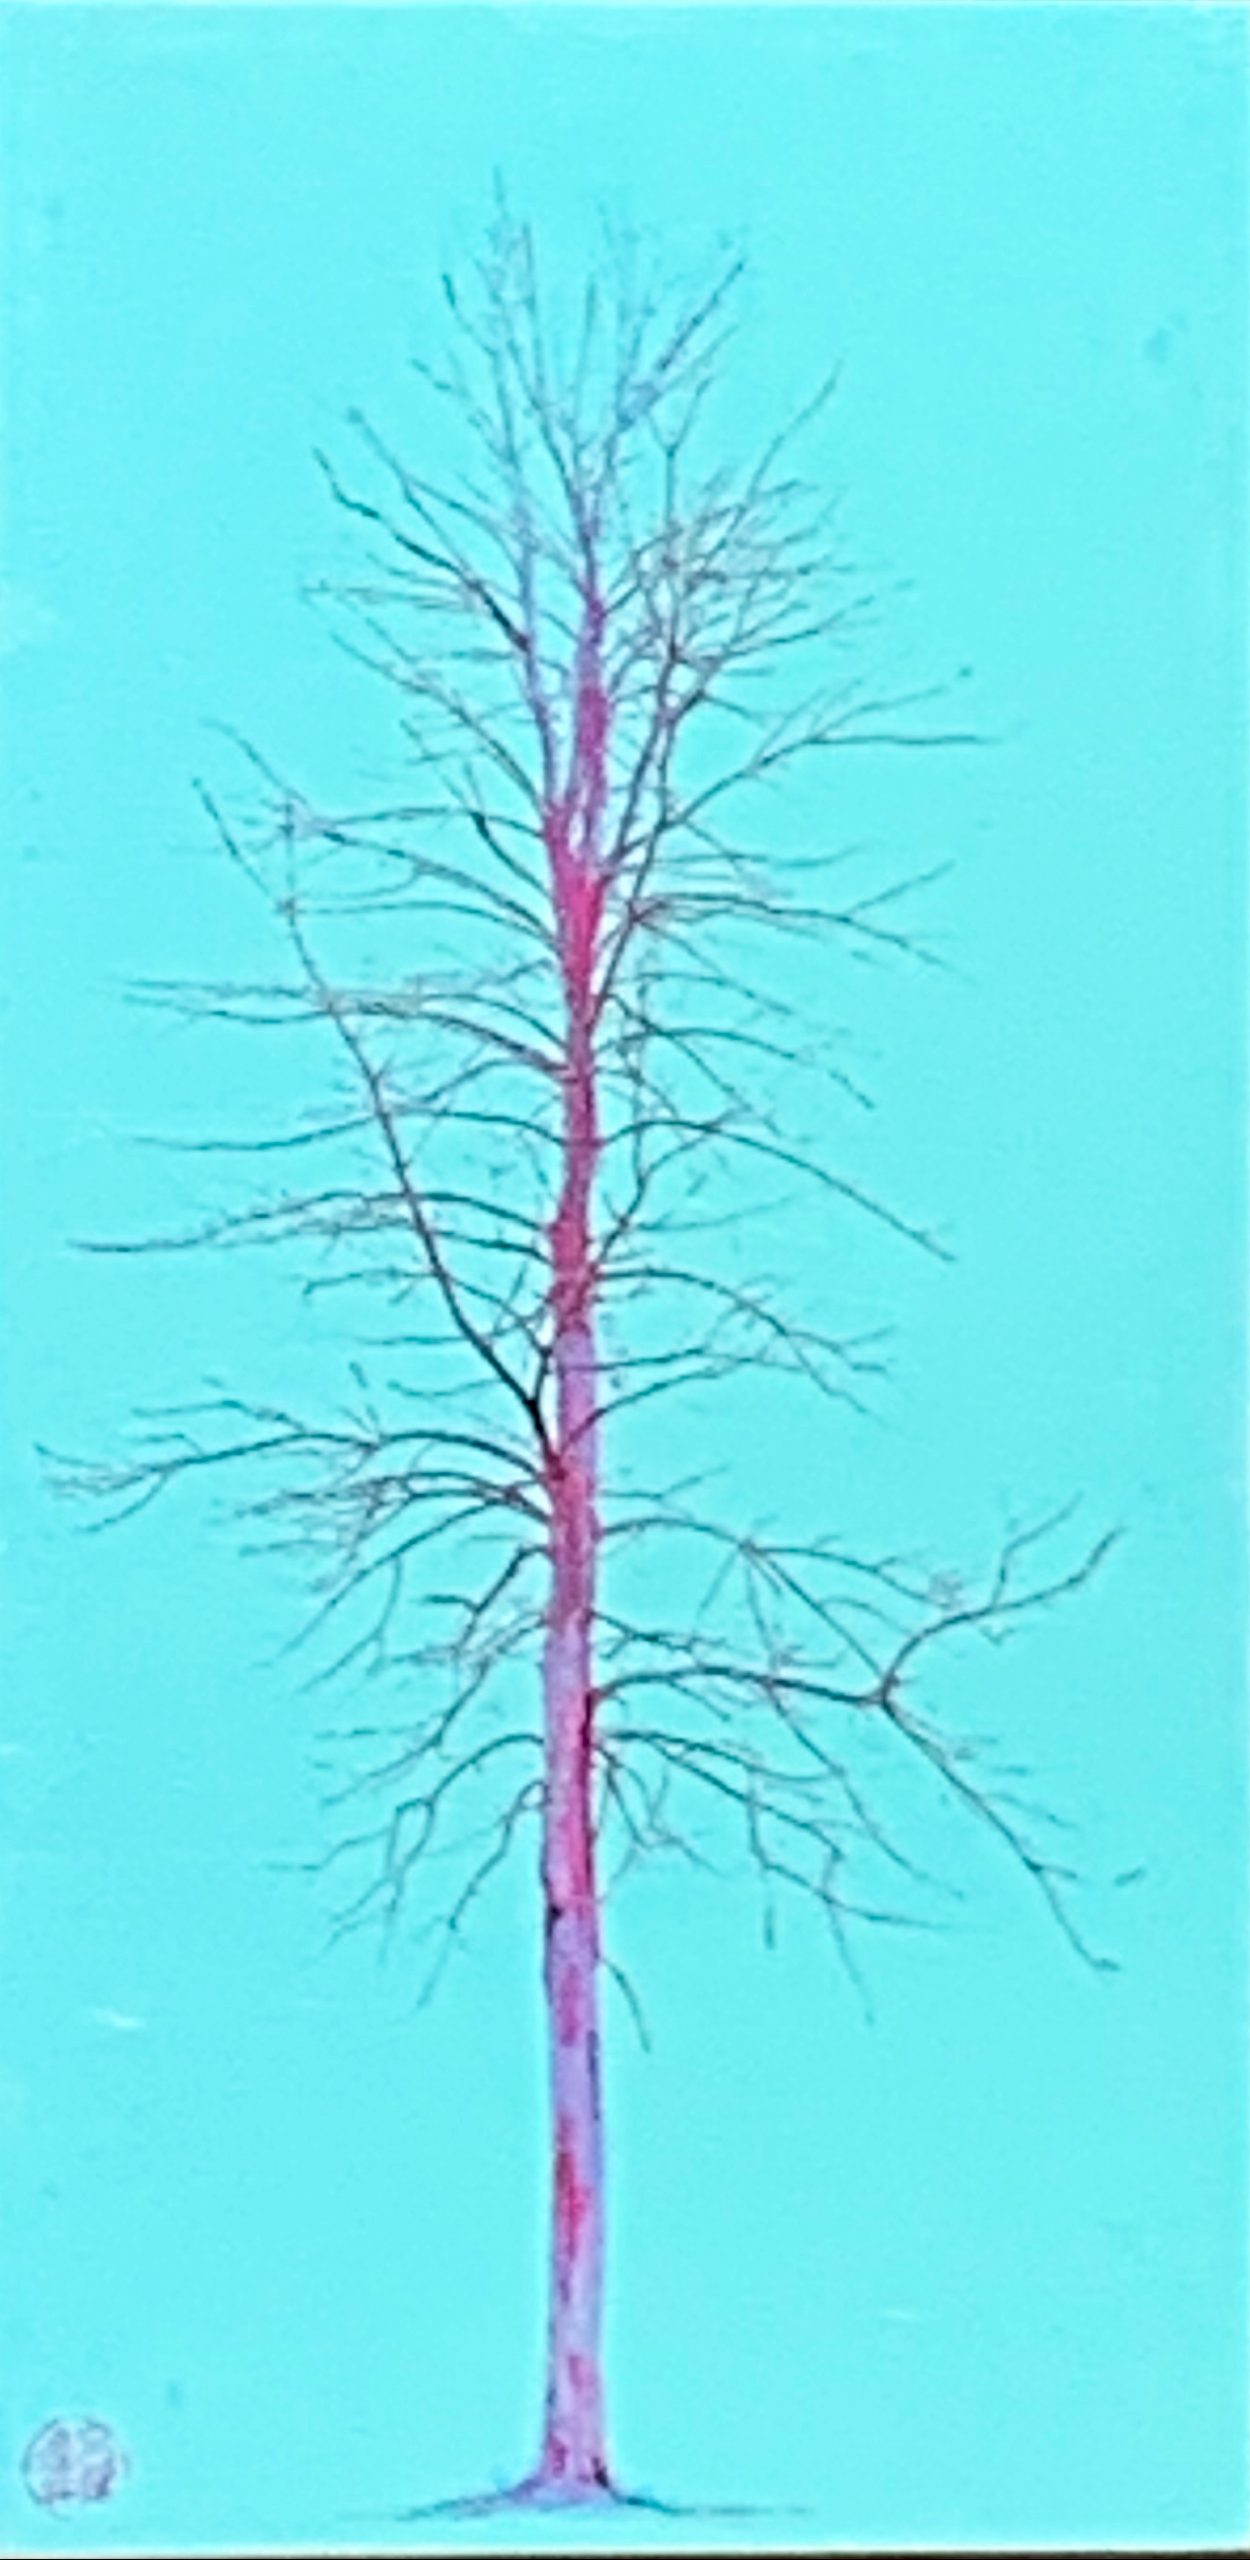 Solitaire Jade, mixed media tree painting by Lori Bagneres   Effusion Art Gallery + Cast Glass Studio, Invermere BC